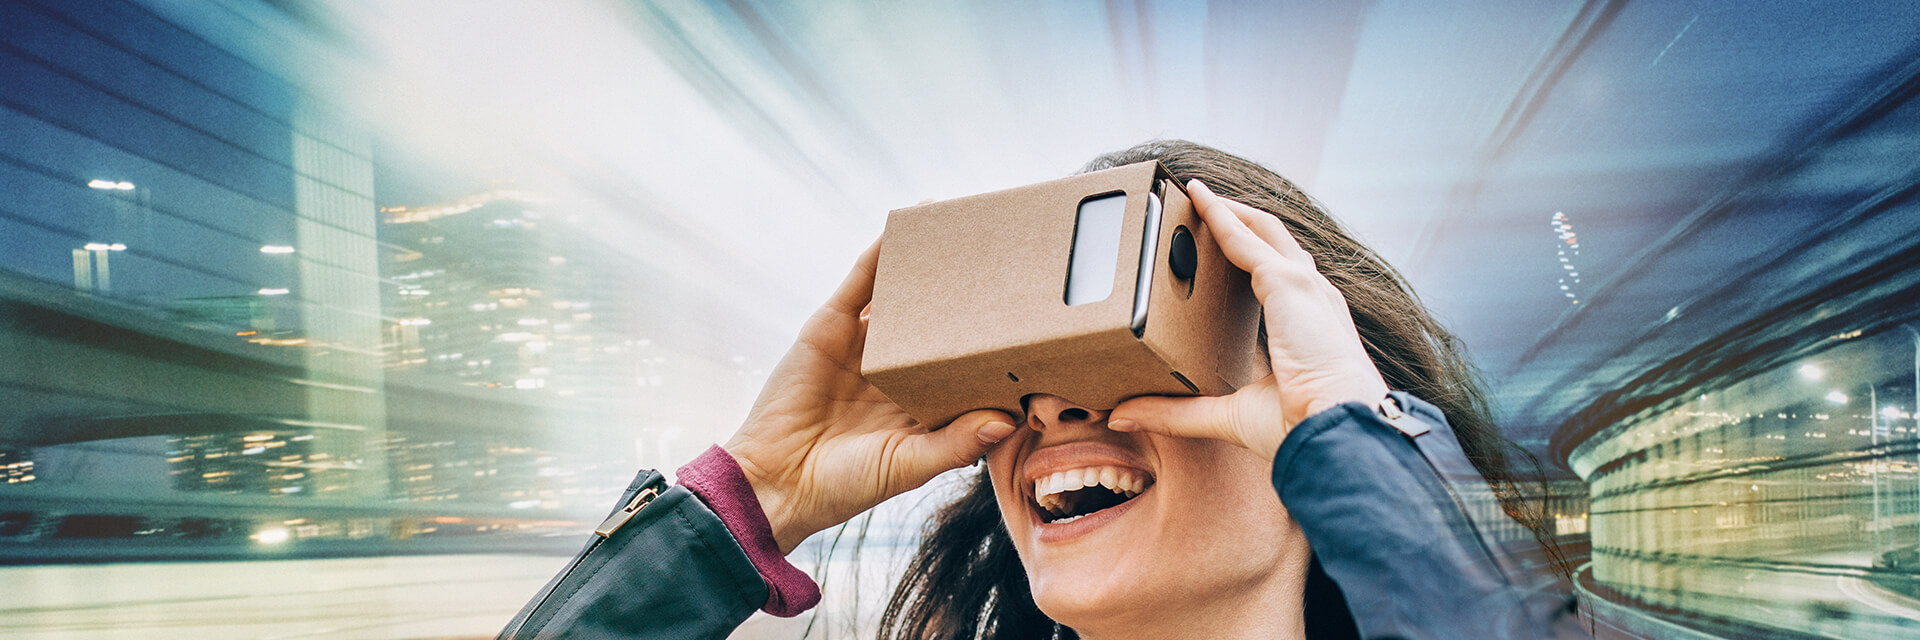 Content providers Netflix and Hulu have teamed up with virtual reality producers Google and Samsung.